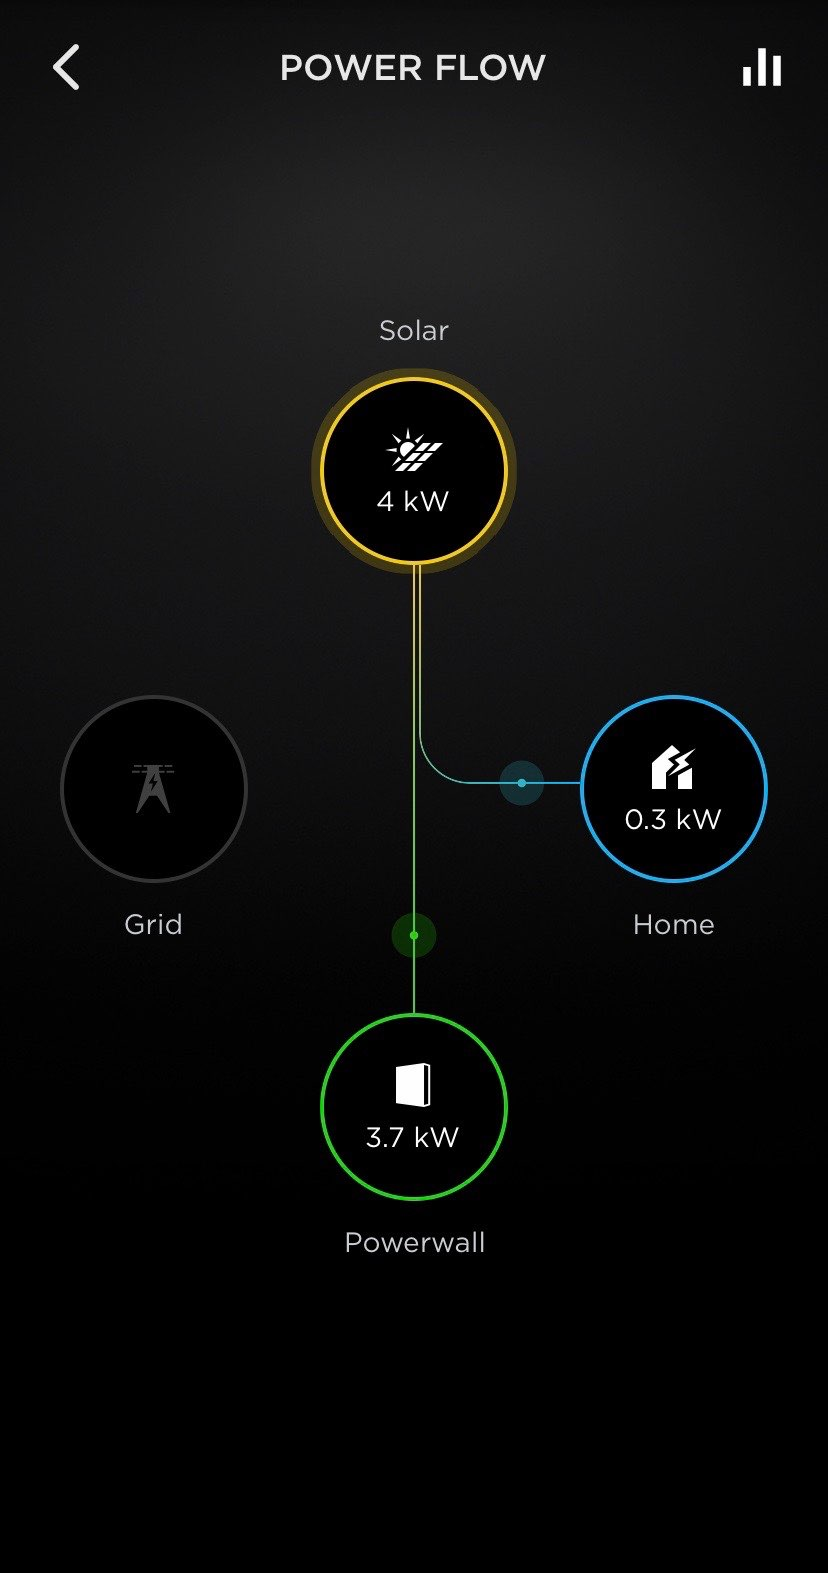 Screenshot of the Power Flow page of the Tesla App, showing energy inputs and outputs over time.